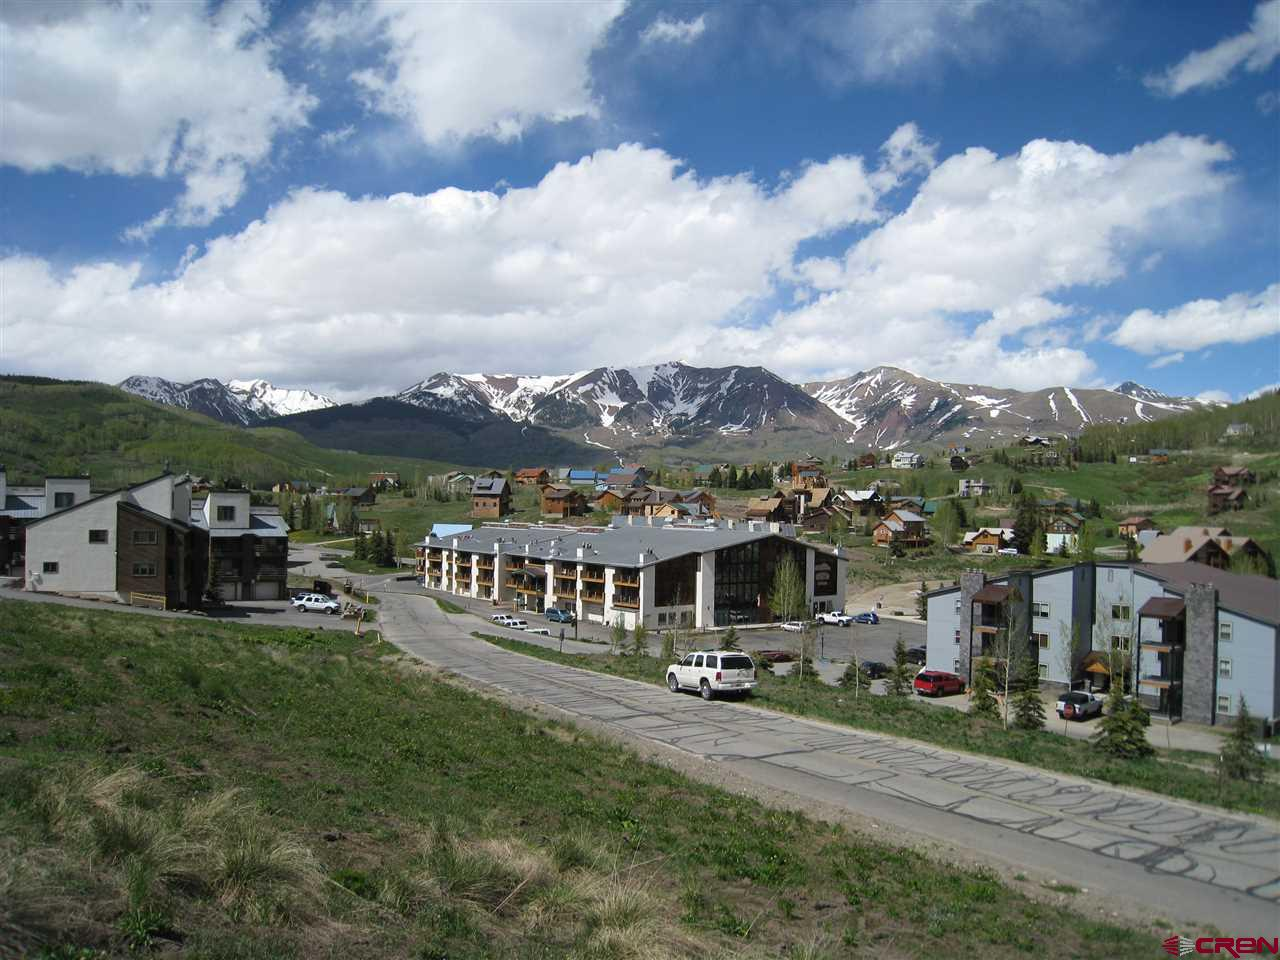 MLS# 757036 - 9 - 17 Marcellina Lane, Mt. Crested Butte, CO 81225